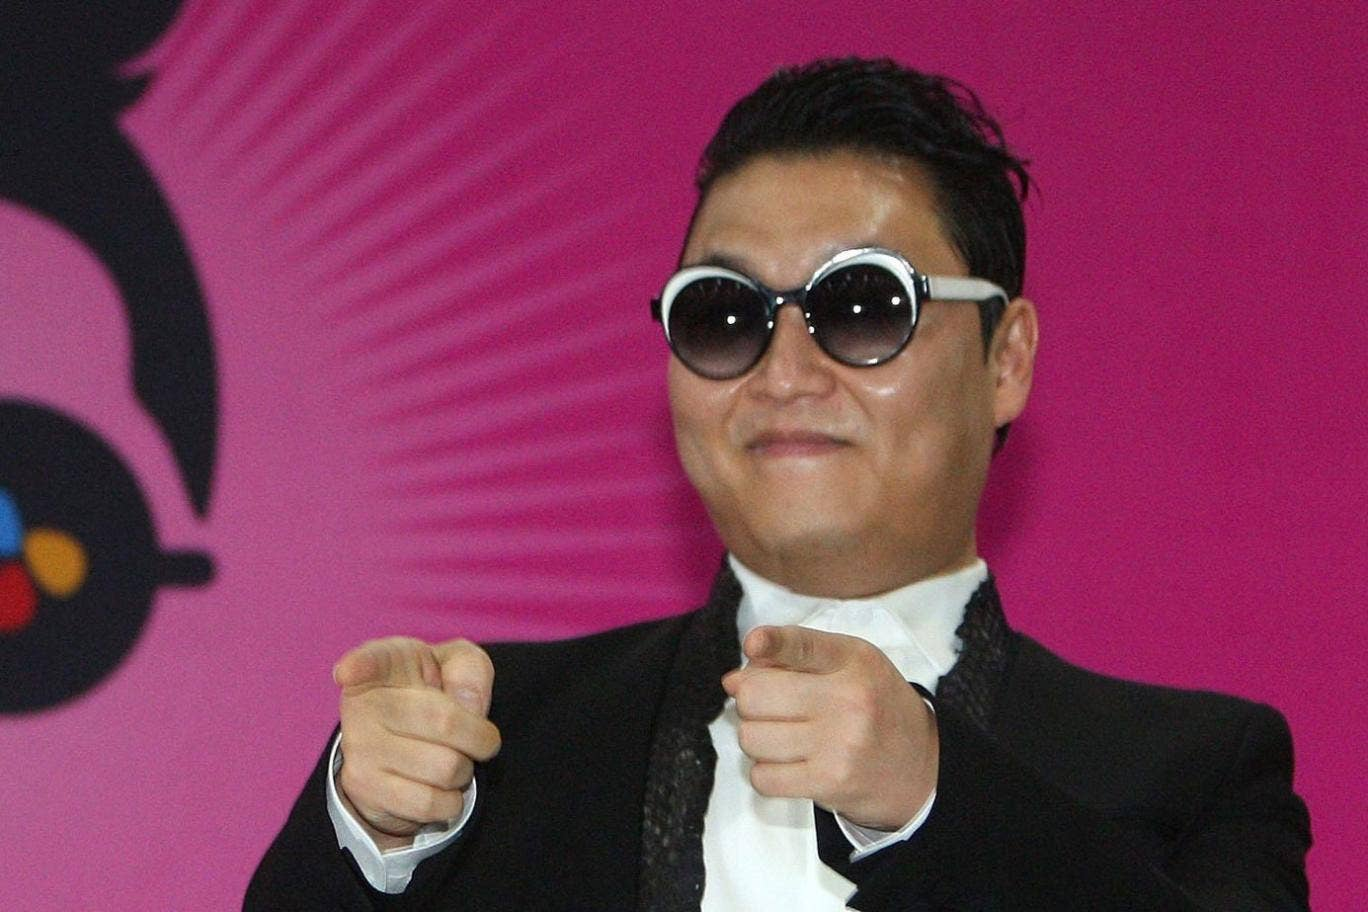 Psy's long-awaited follow-up to Gangnam Style, Gentleman, was released earlier this week